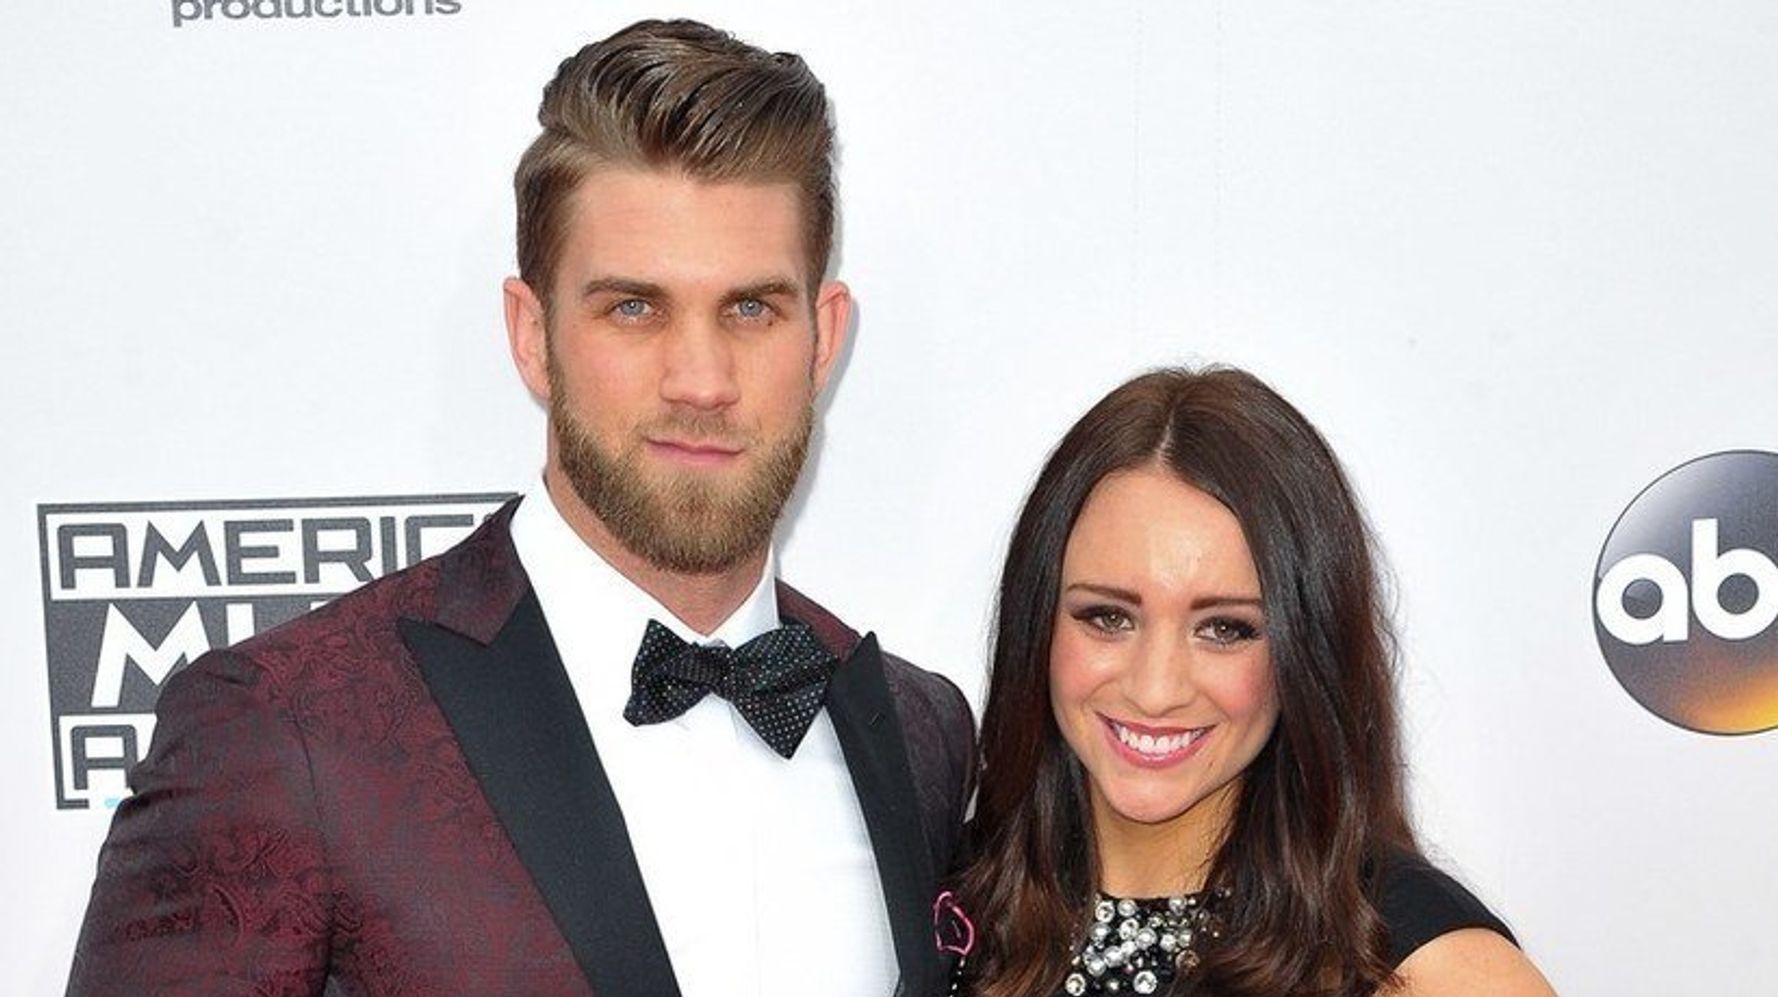 Bryce Harper Wedding.Baseball Player Bryce Harper Lined His Wedding Tuxedo With Photos Of